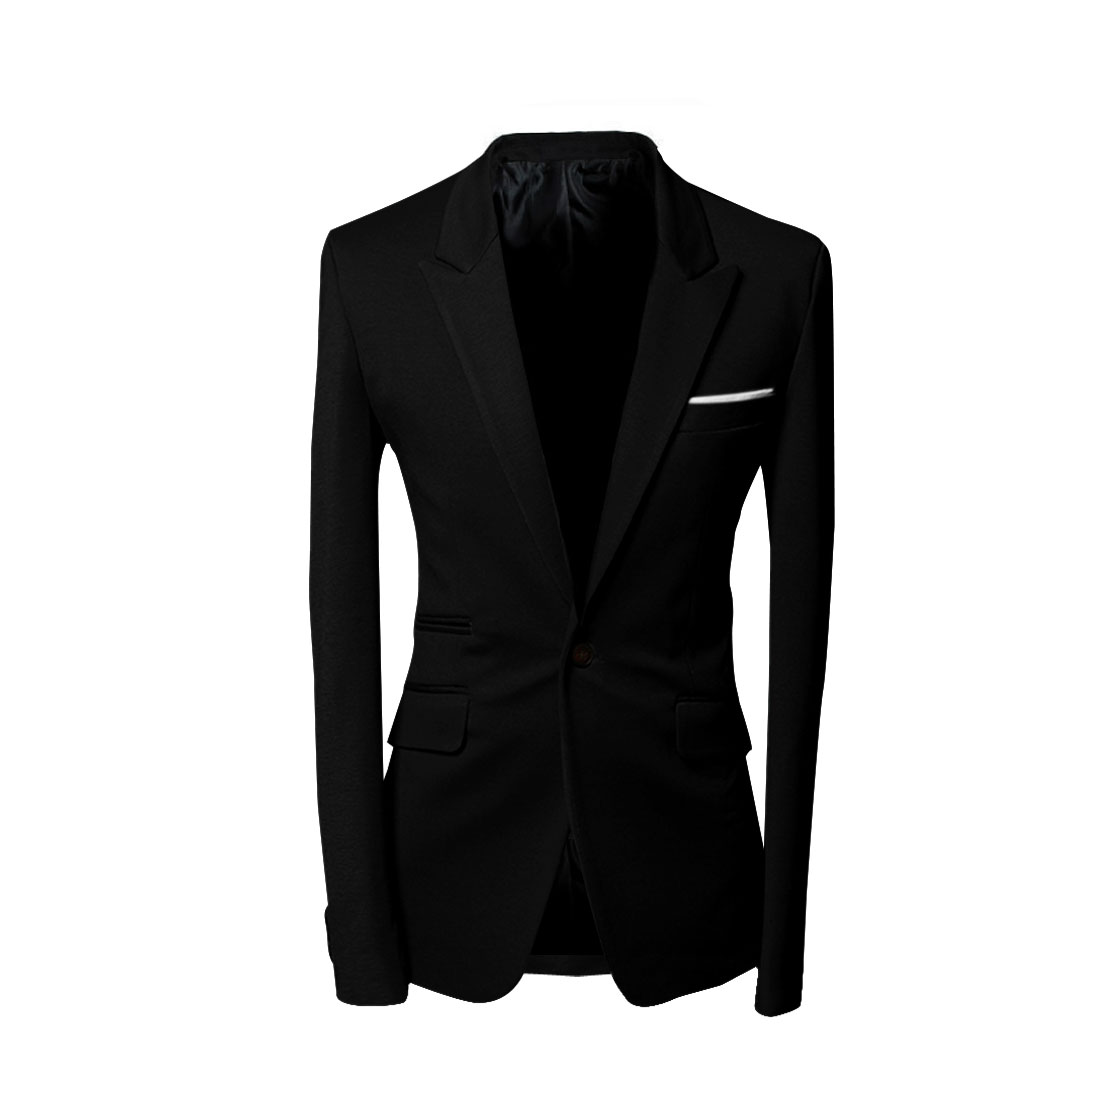 Men M Black Long Sleeve Design Slim Fit Notched Lapel Button Front Blazer